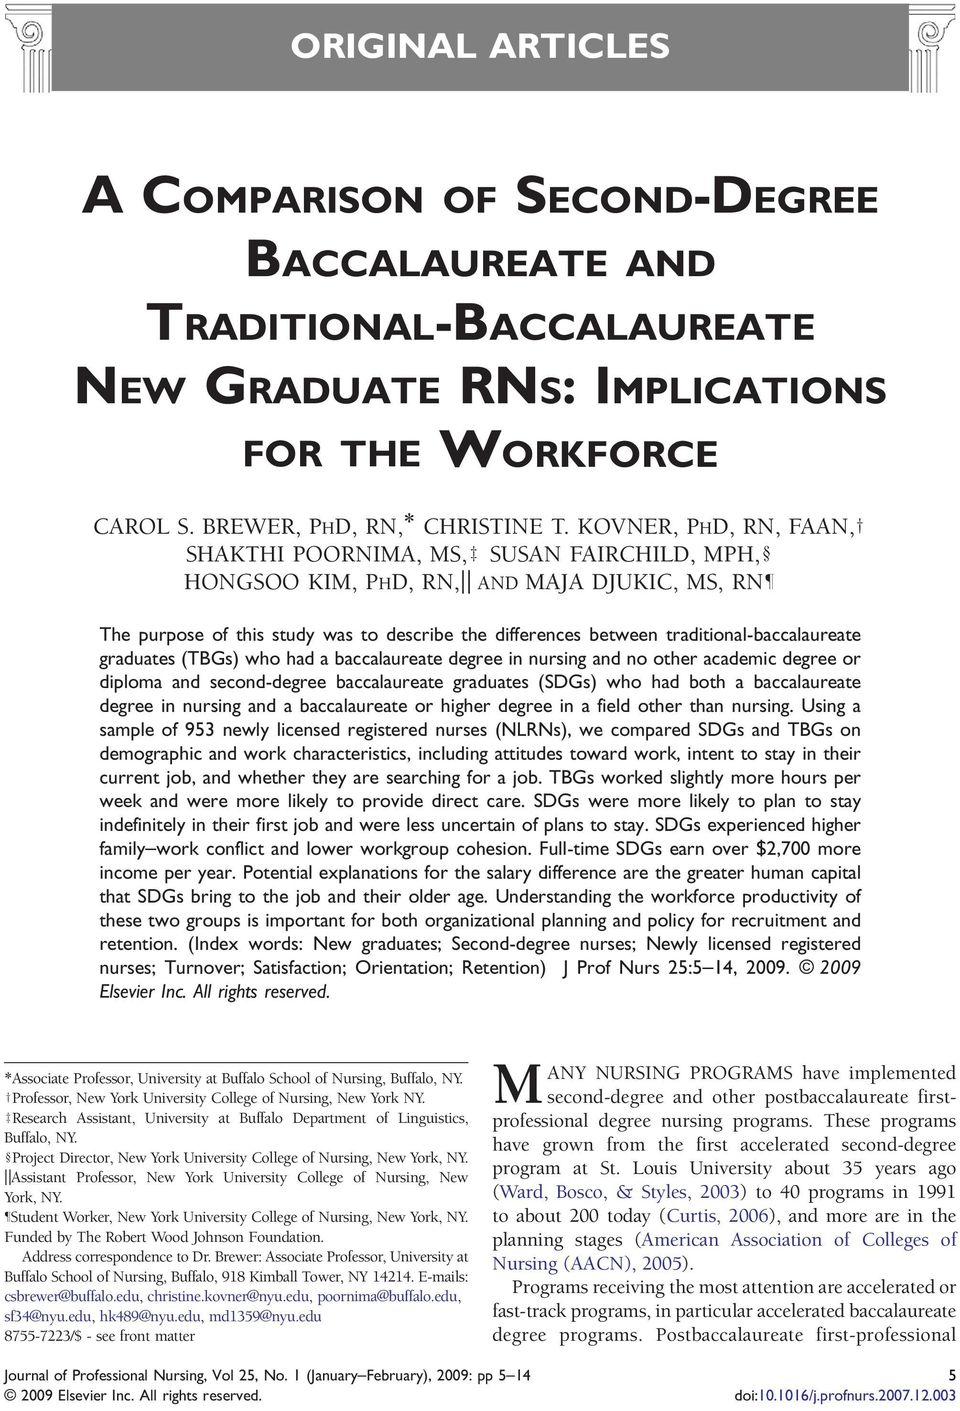 traditional-baccalaureate graduates (s) who had a baccalaureate degree in nursing and no other academic degree or diploma and second-degree baccalaureate graduates (SDGs) who had both a baccalaureate